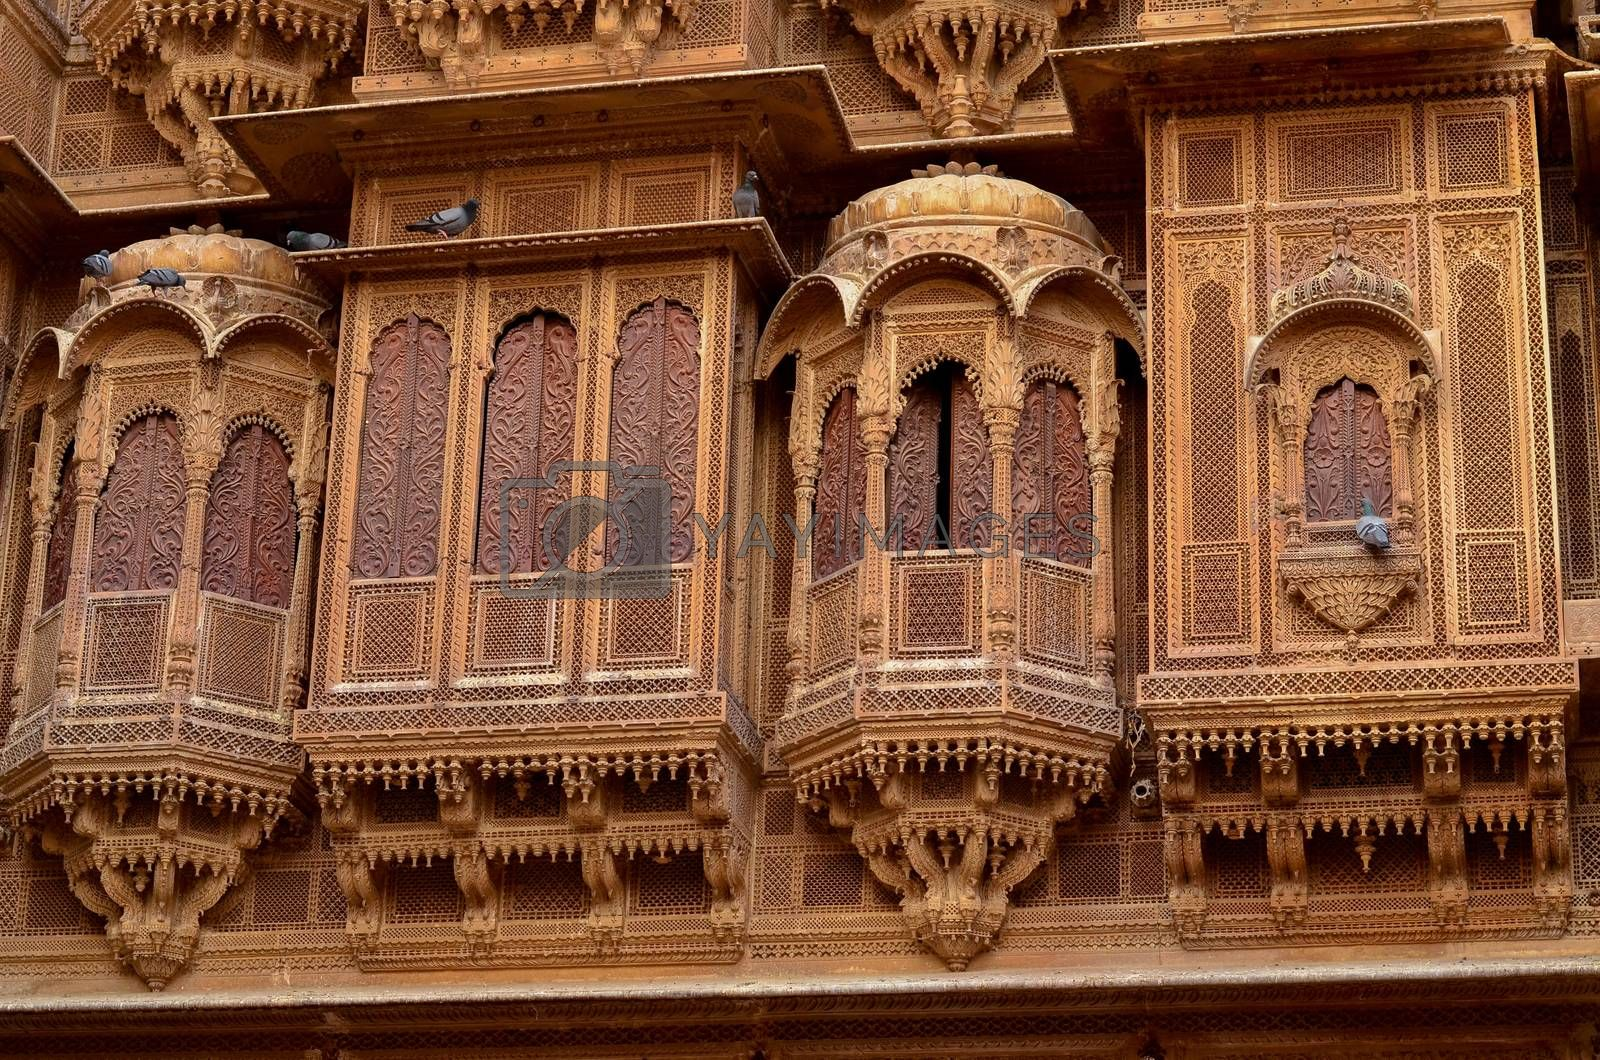 Traditional Rajasthani haveli with a decorated window at Patwon ki haveli in Jaisalmer, Rajasthan, India. Series of early-1800s palaces, now a museum featuring intricate carvings, furniture & artwork.